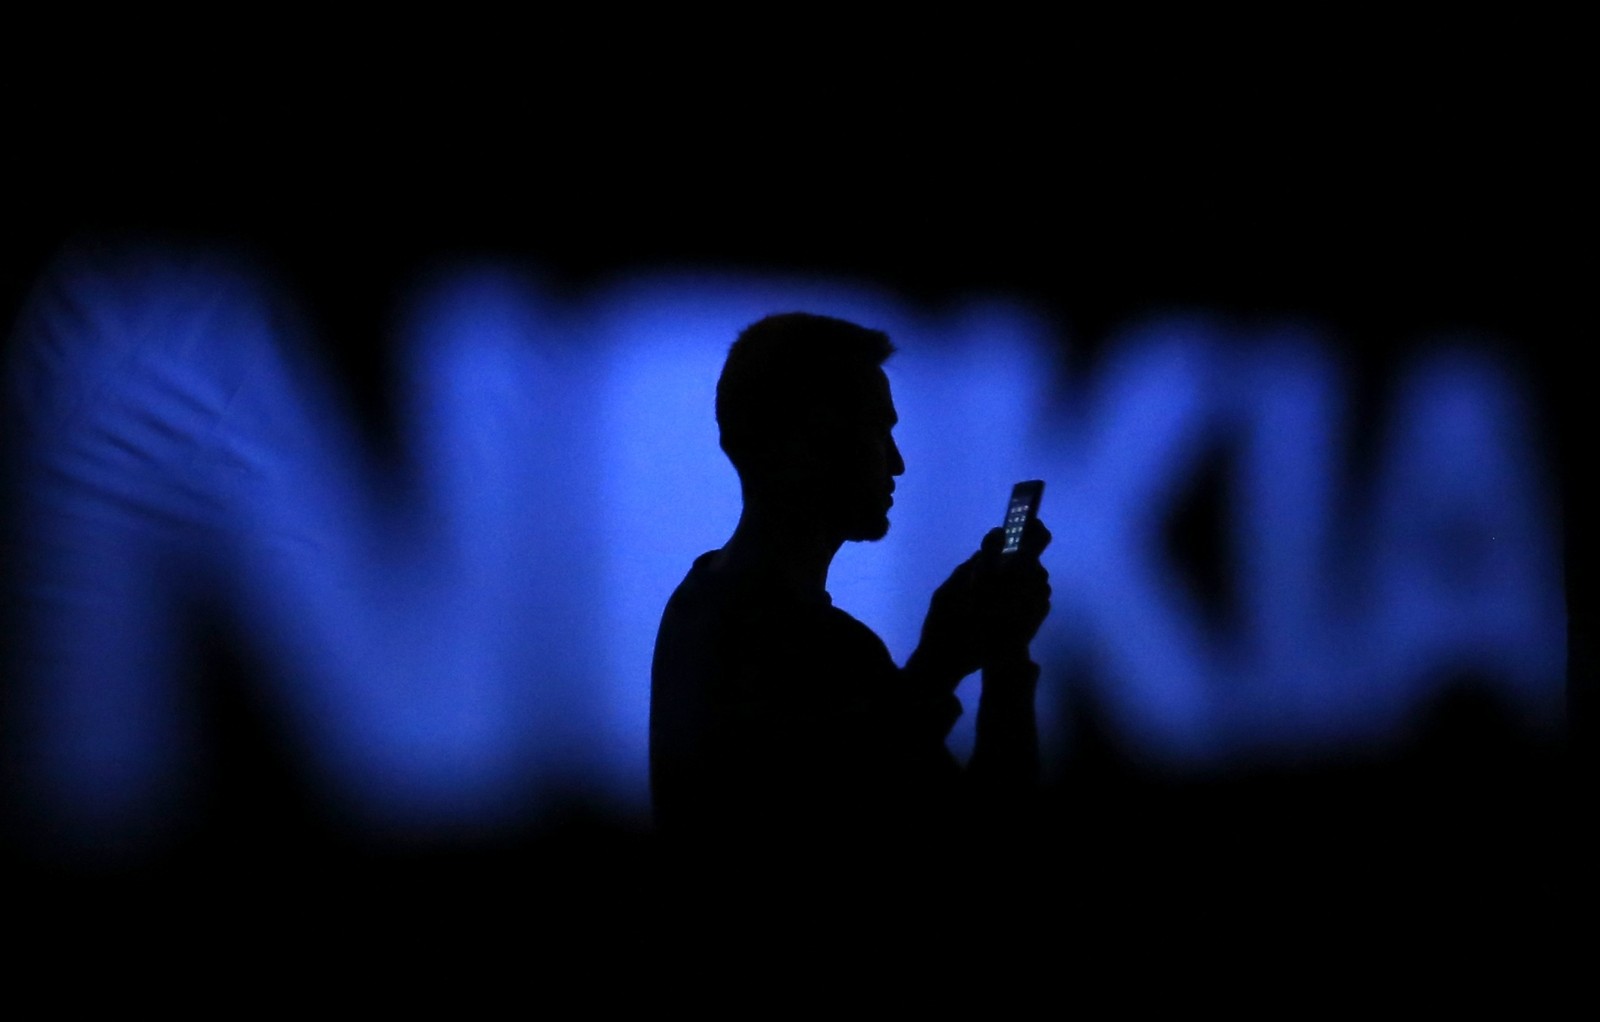 the market plan of nokia Nokia's strategic approach to marketing not only includes creating new markets and new customers, it also involves building lifetime relationships.